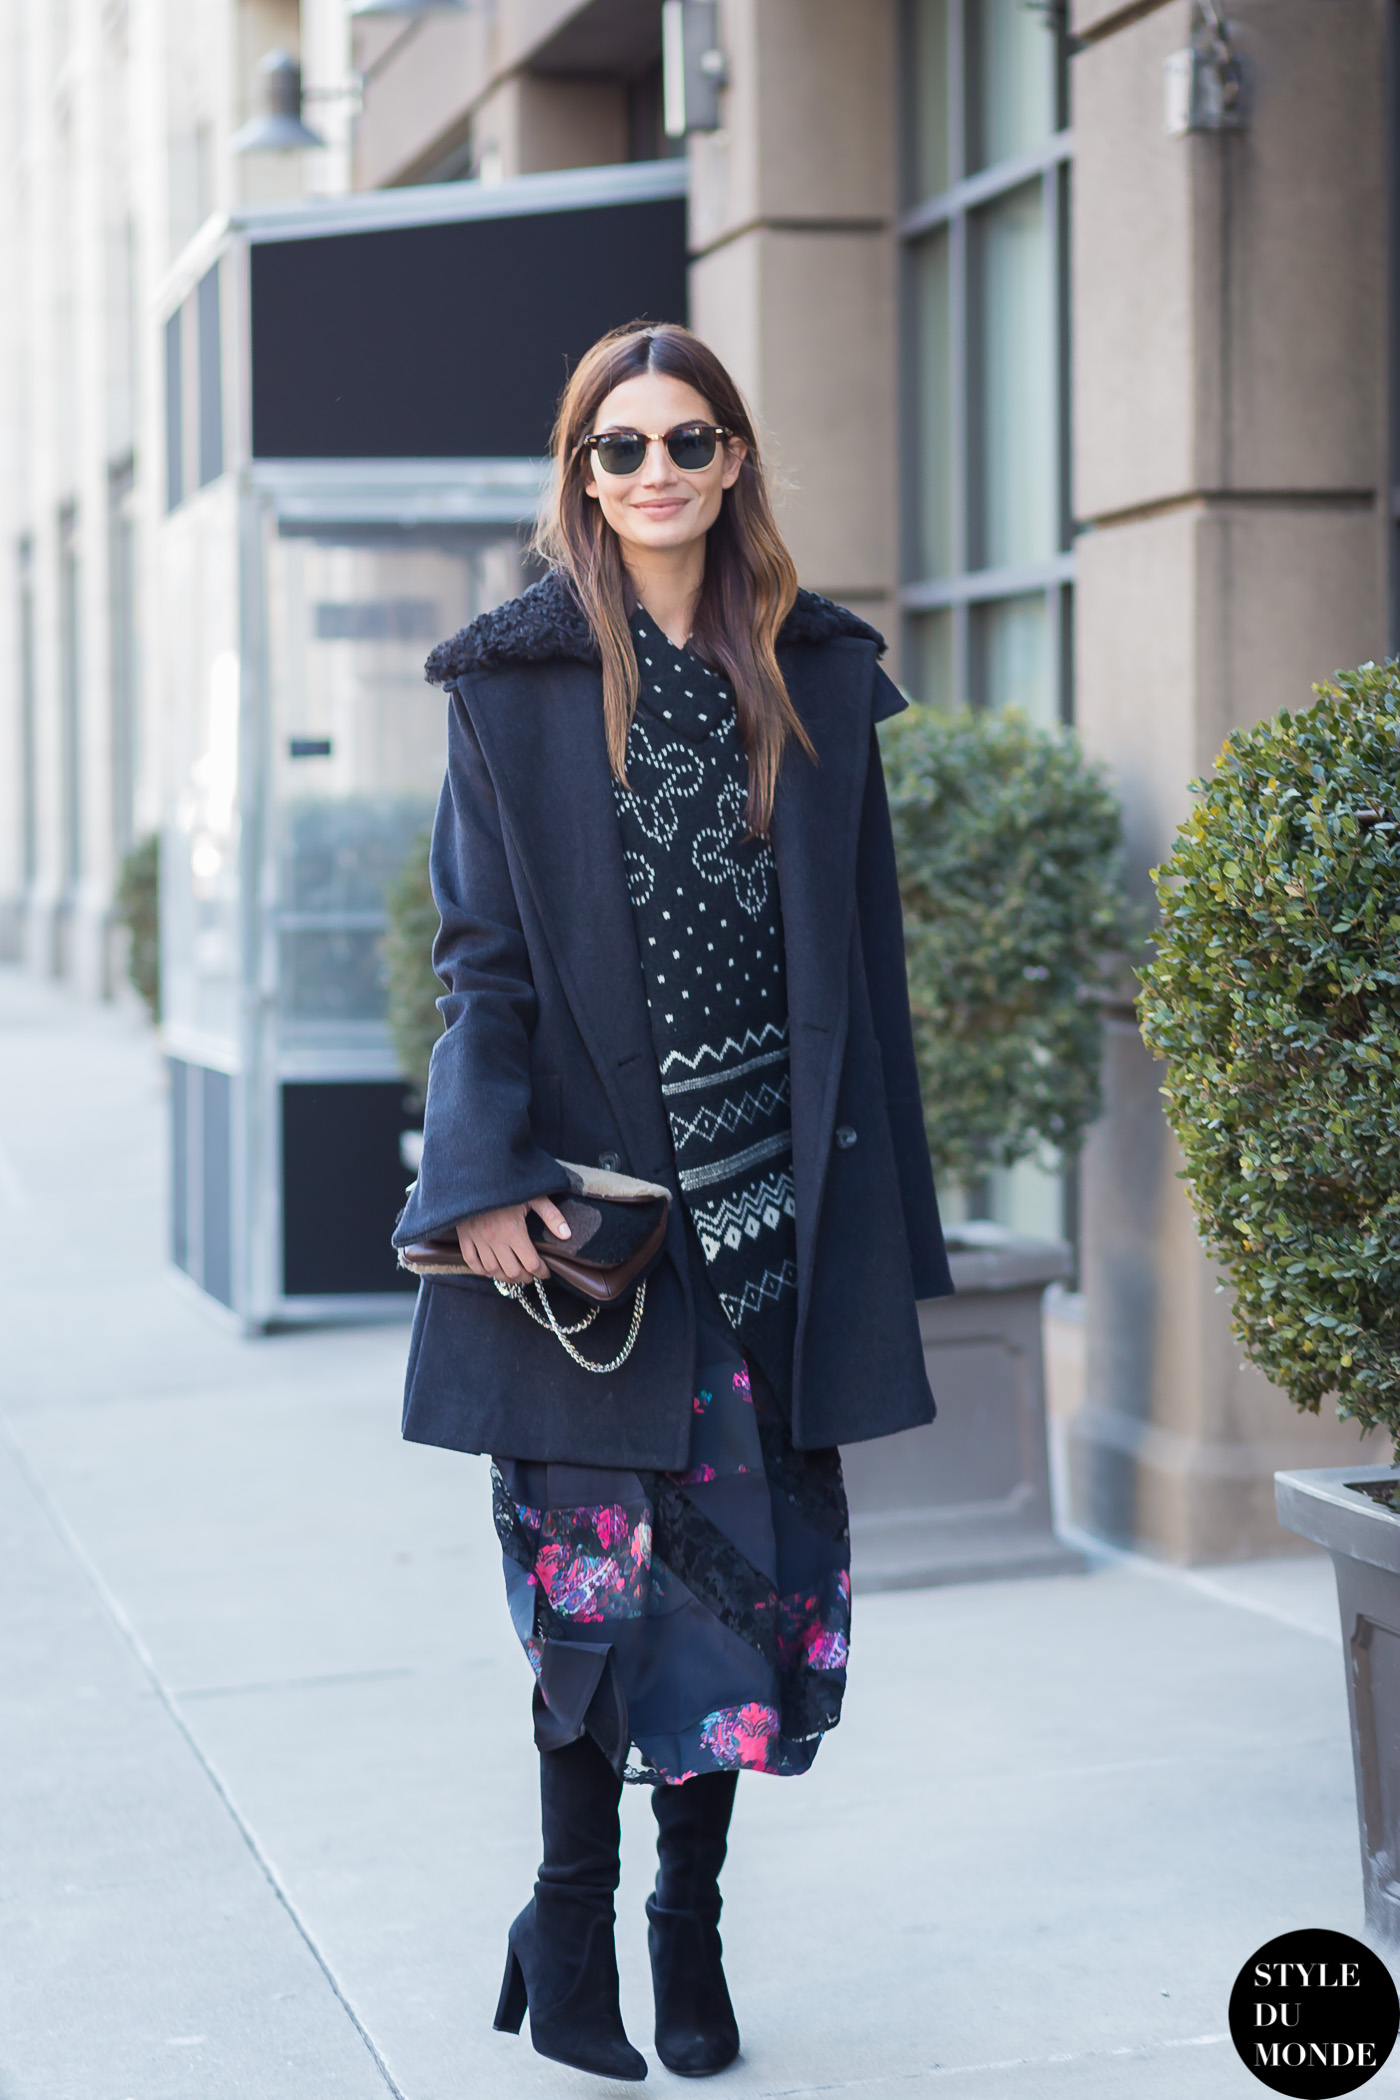 New york fashion week fw 2015 street style lily aldridge style du monde street style street Fashion style october 2015